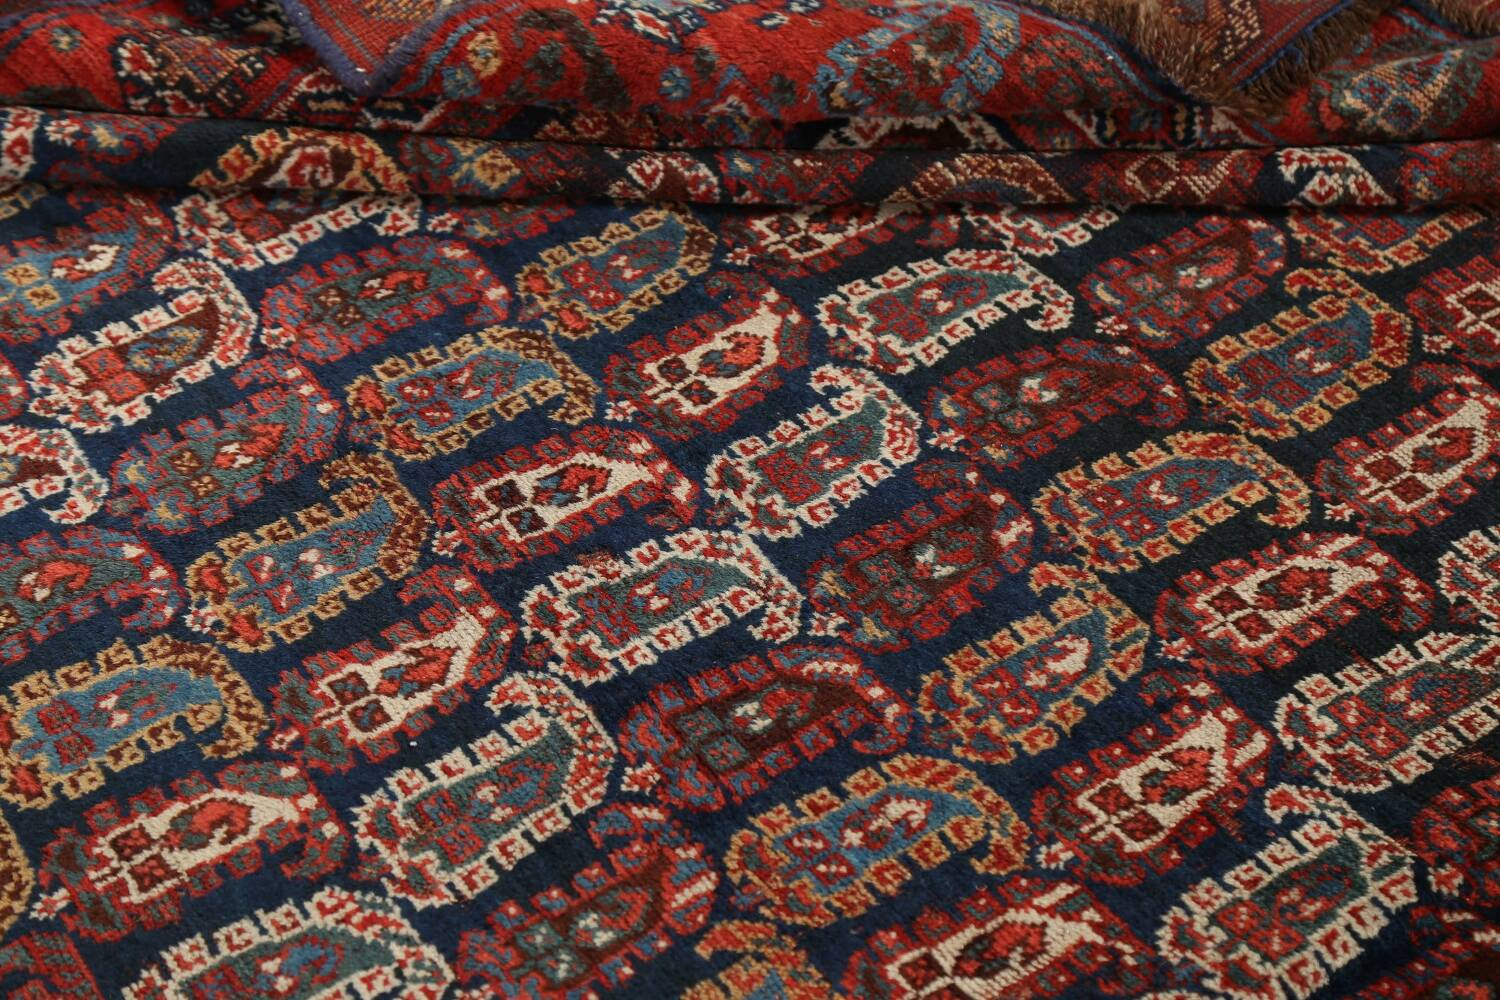 Pre-1900 Antique All-Over Malayer Persian Area Rug 6x7 image 17